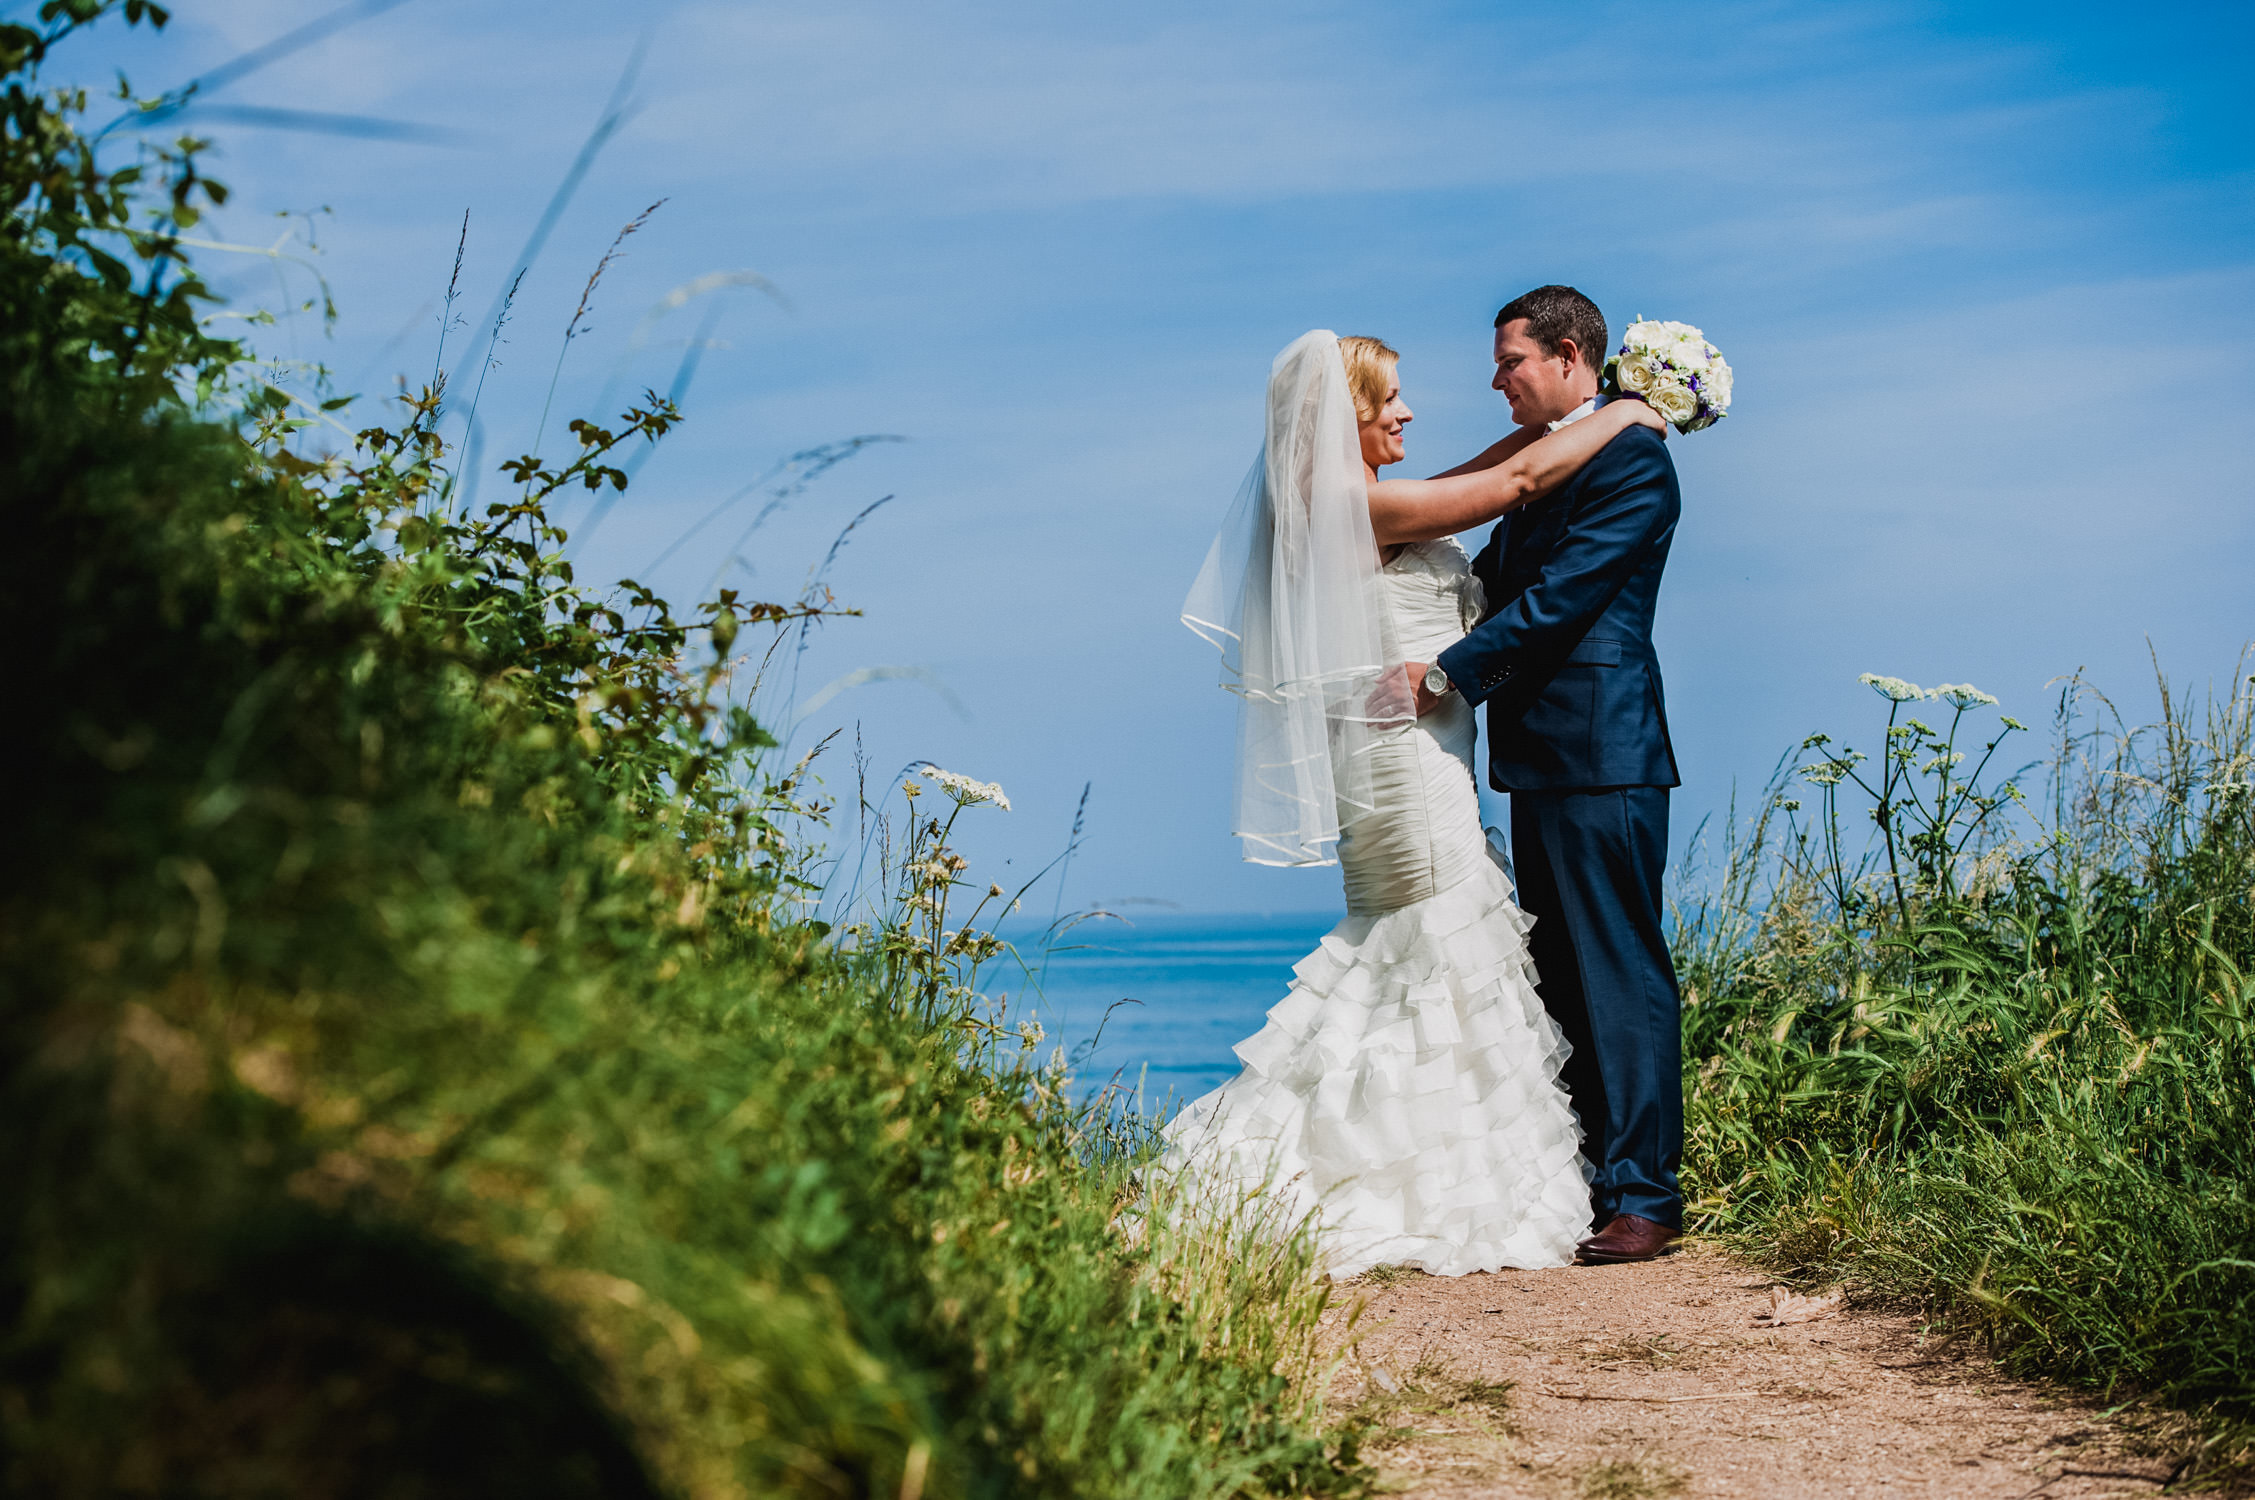 bride and groom standing on the beach, wedding photography devon